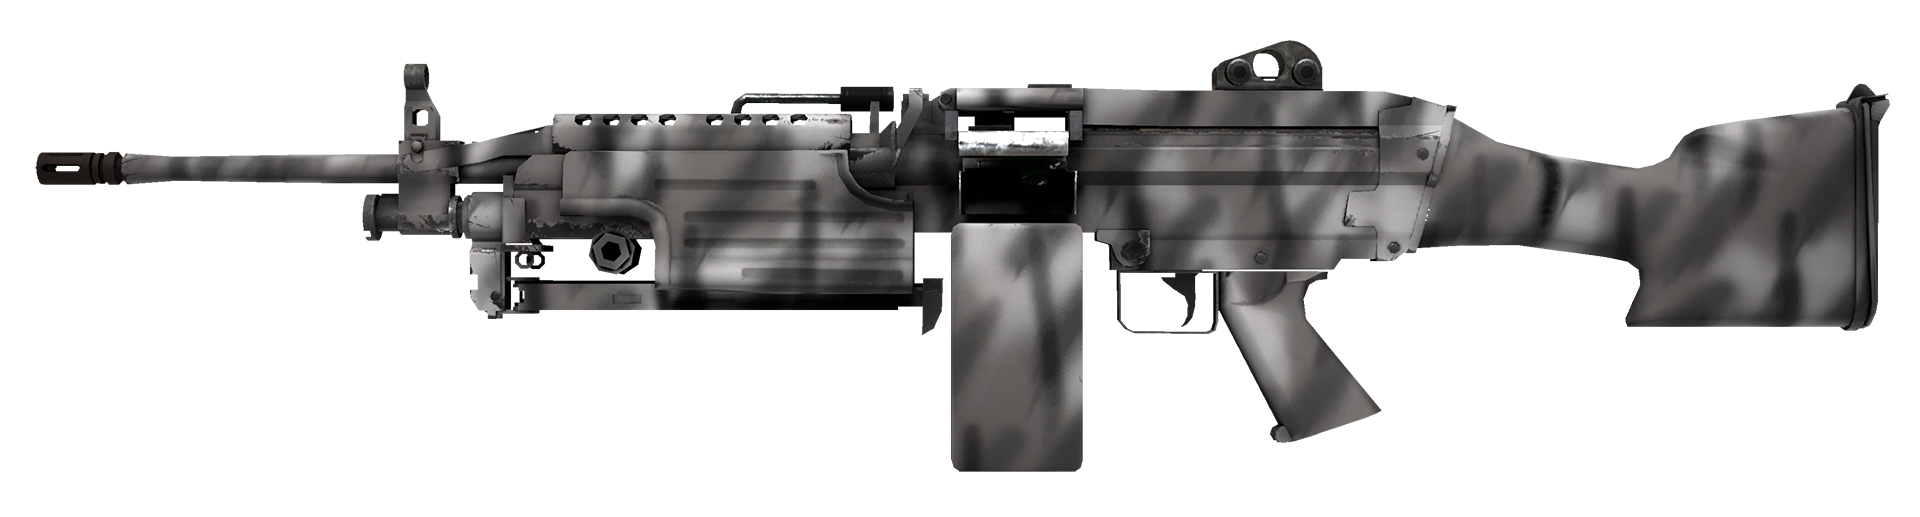 M249 Contrast Spray Large Rendering